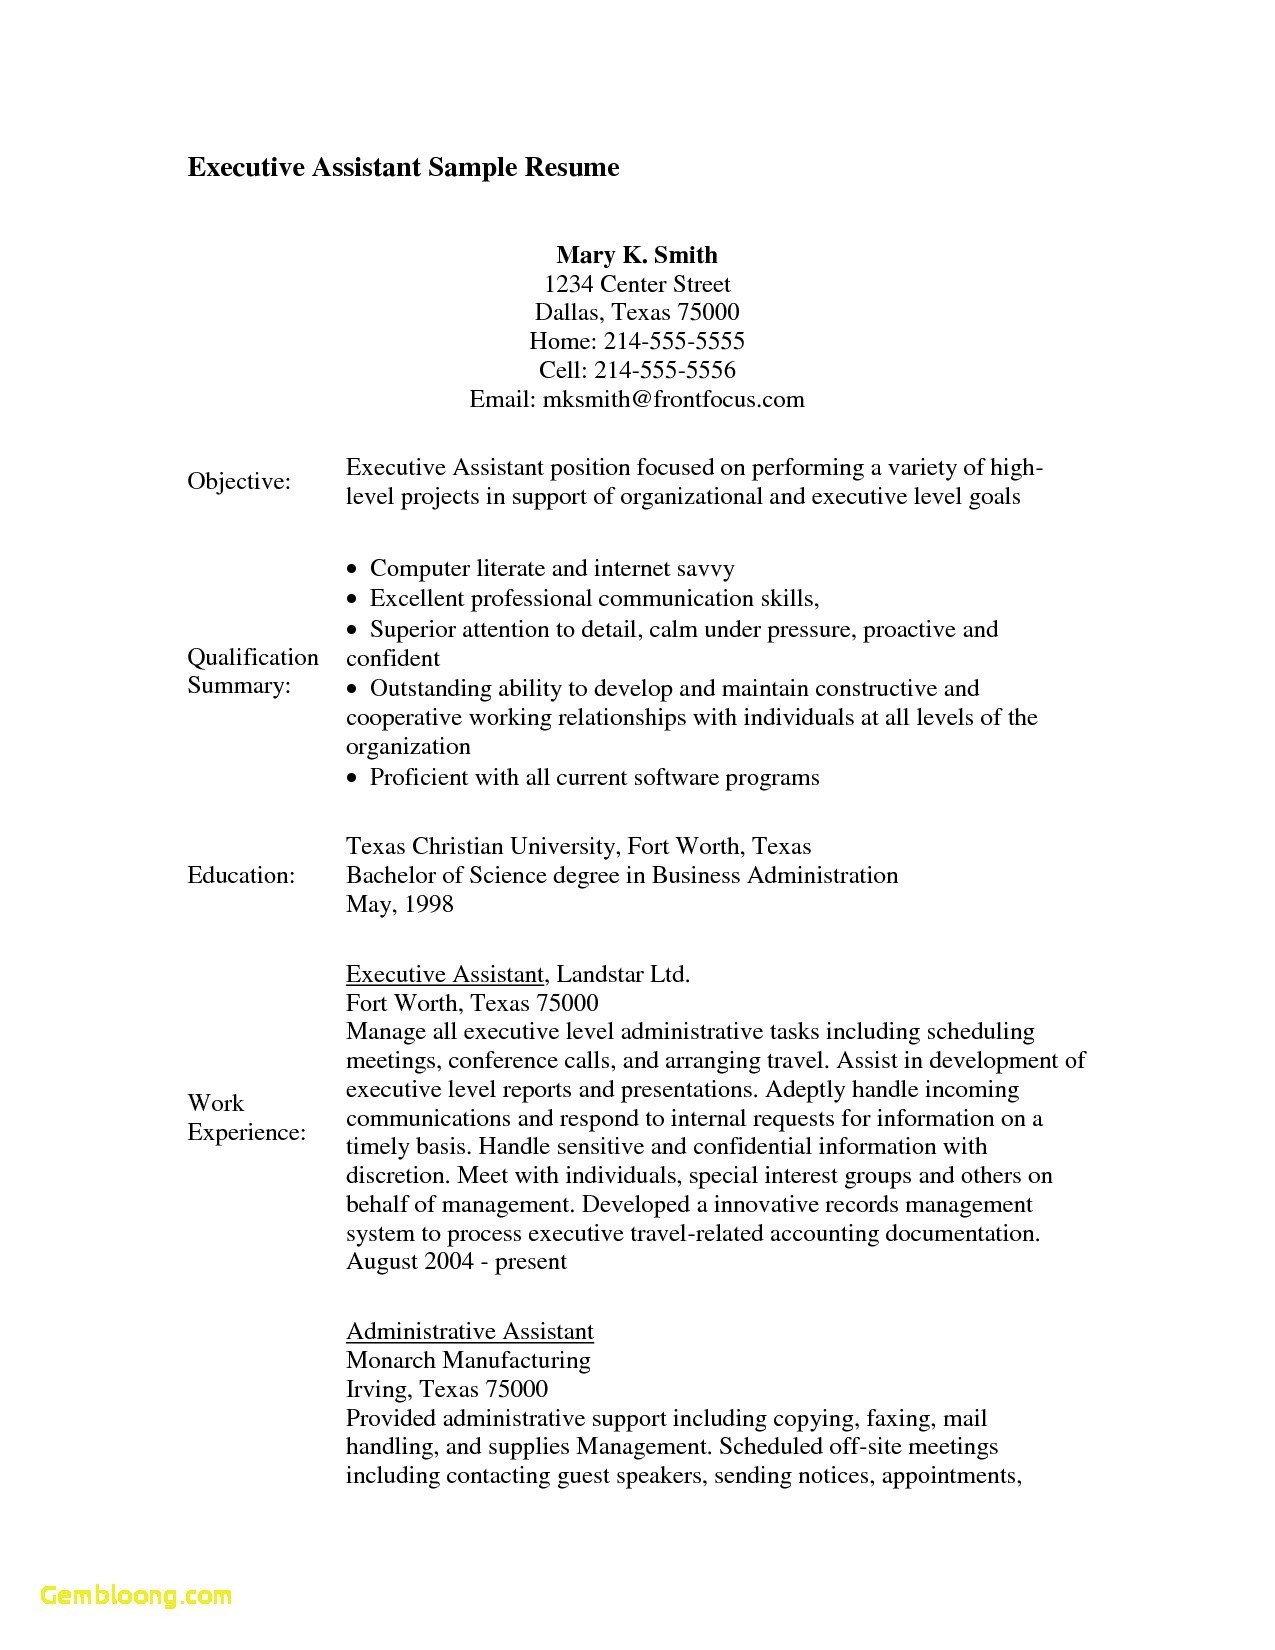 Medical assistant Summary for Resume - Medical assistant Resume New Inspirational Medical assistant Resumes